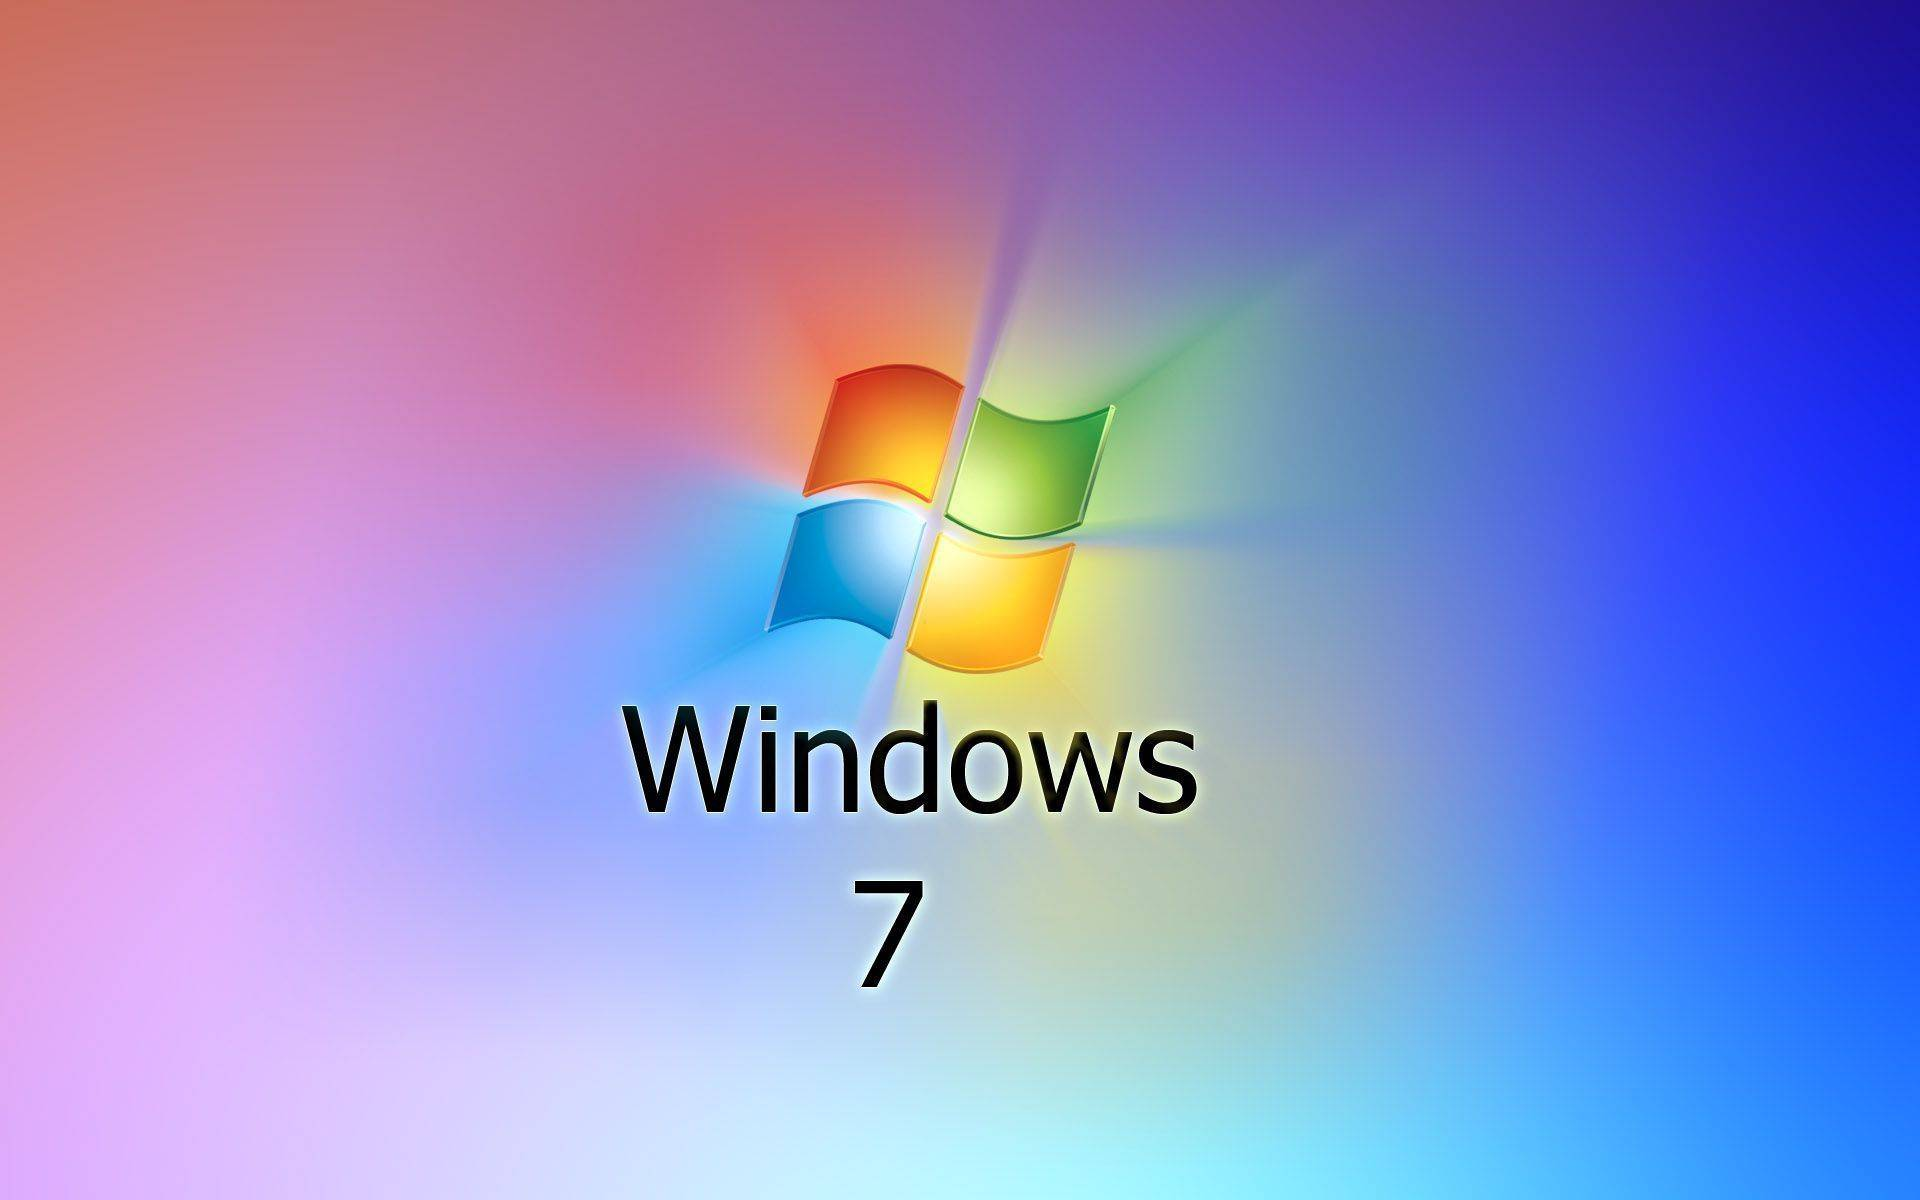 Windows 7 Wallpapers Free Download Hd